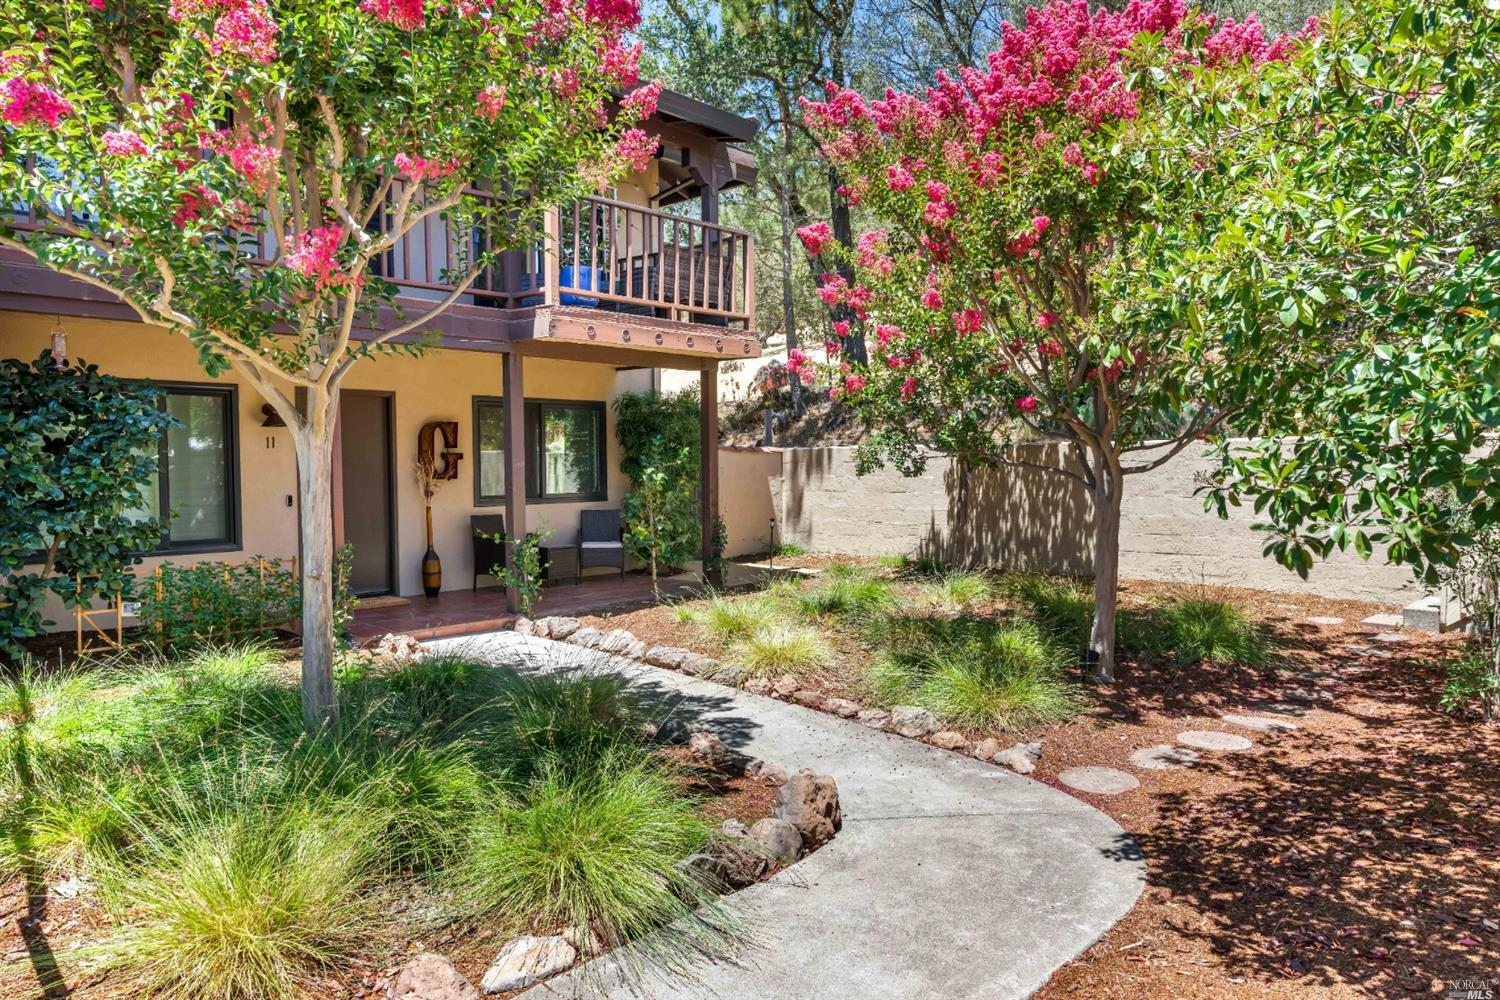 Short walk to the Sonoma Plaza, restaurants, wineries & hiking trails. Newly-renovated modern farmhouse condo has all the luxuries of Sonoma-living. This Eastside 2 bed, 2 bath home has been recently updated; new bathrooms, flooring, windows & coverings, doors, countertops, washer/ventless dryer, lighting, EV Charging in carport, among many other upgrades. The living room features a new gas fireplace w/gorgeous stone surround & custom shelving w/display space & a bar area w/wine refrigerator. The pristine modern kitchen complete w/stainless steel appliances features a new Calacatta quartz waterfall countertop w/bar seating, new cabinets, open shelving & a copper farmhouse sink. The dining area leads to an outdoor patio, ideal to BBQ & dine outdoors. Designed for indoor/outdoor living, the newly landscaped yard is your own oasis nestled at the foot of the Sonoma Overlook Trail w/hiking access. Perfectly situated at the end of an all-age complex, nearby field & hillside for privacy. #11